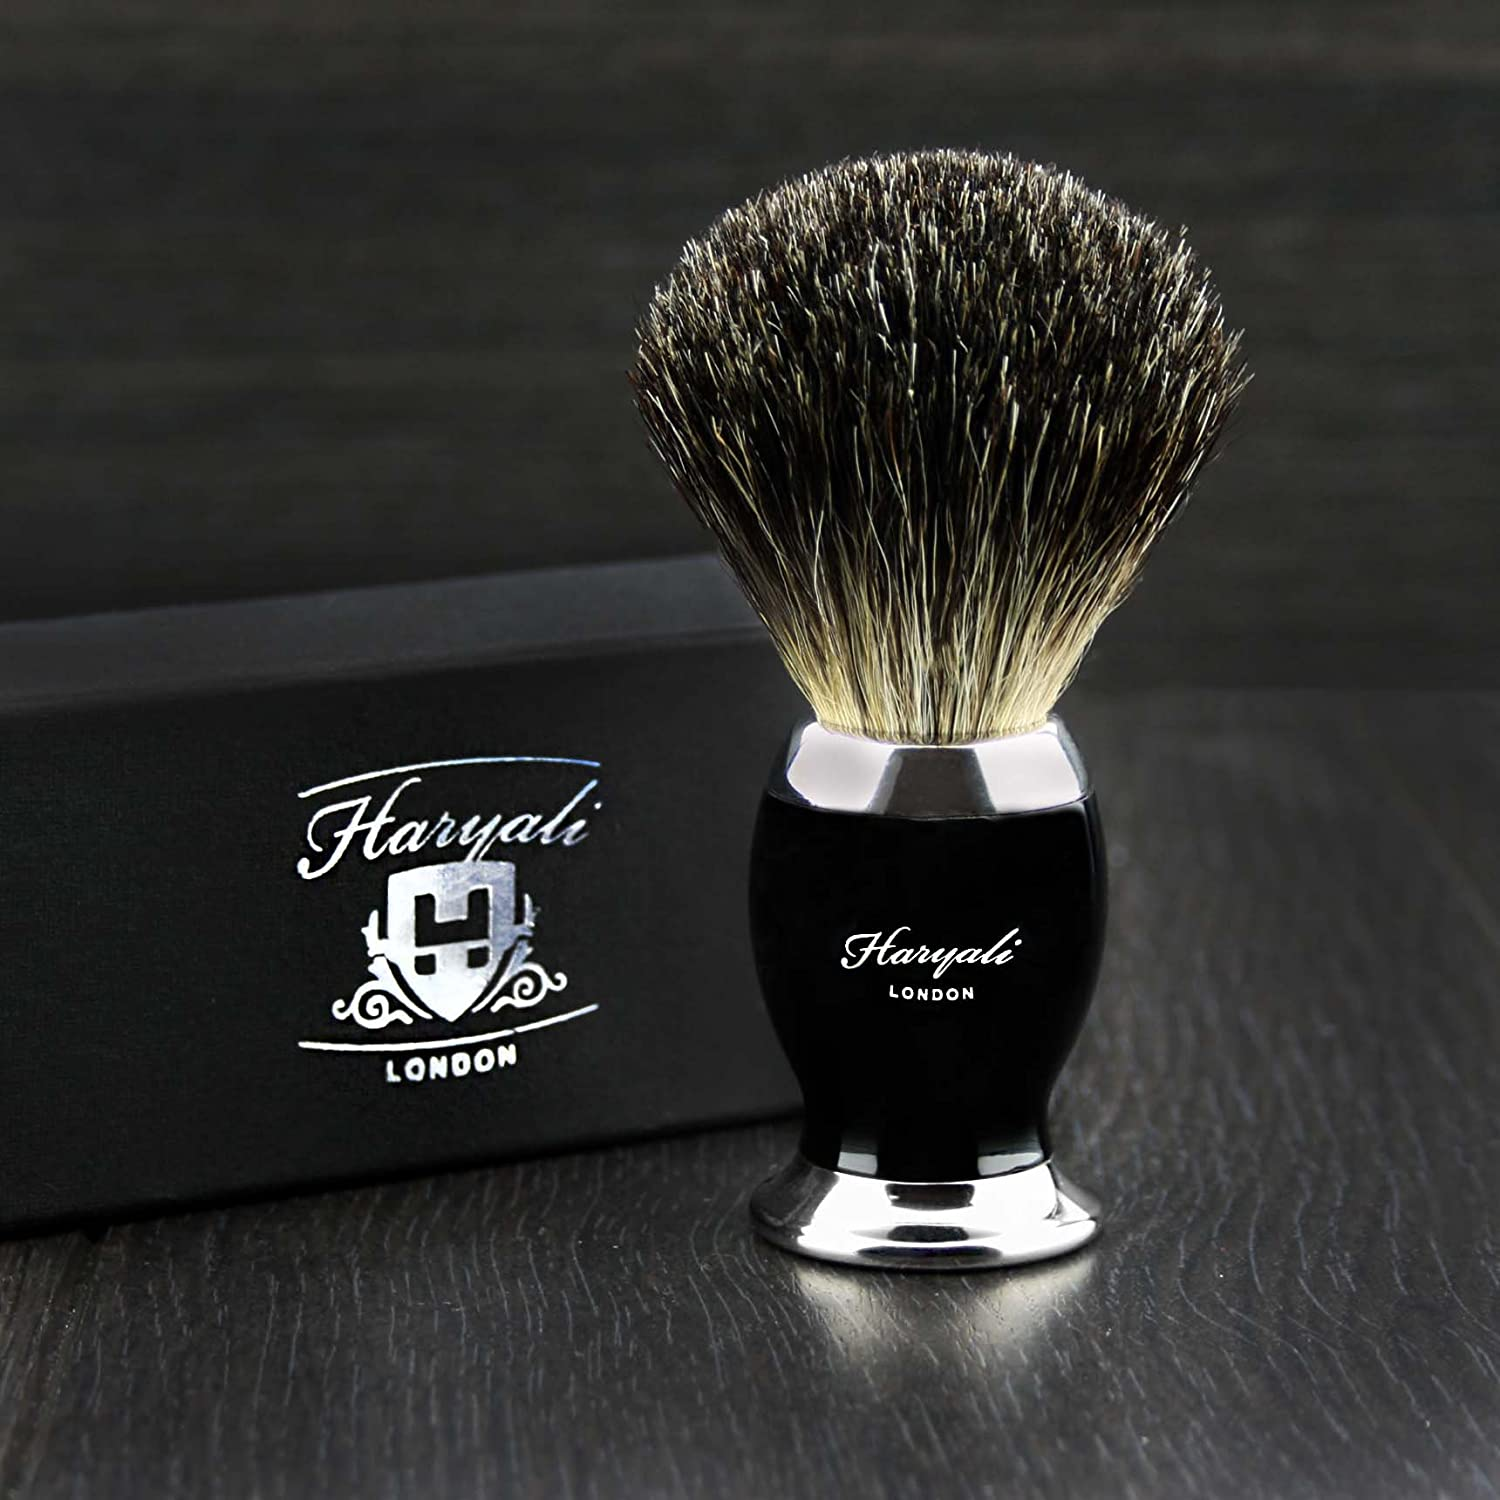 Black and Metal Colour Base Brush with Save money Pure Shaving Badger Super sale period limited